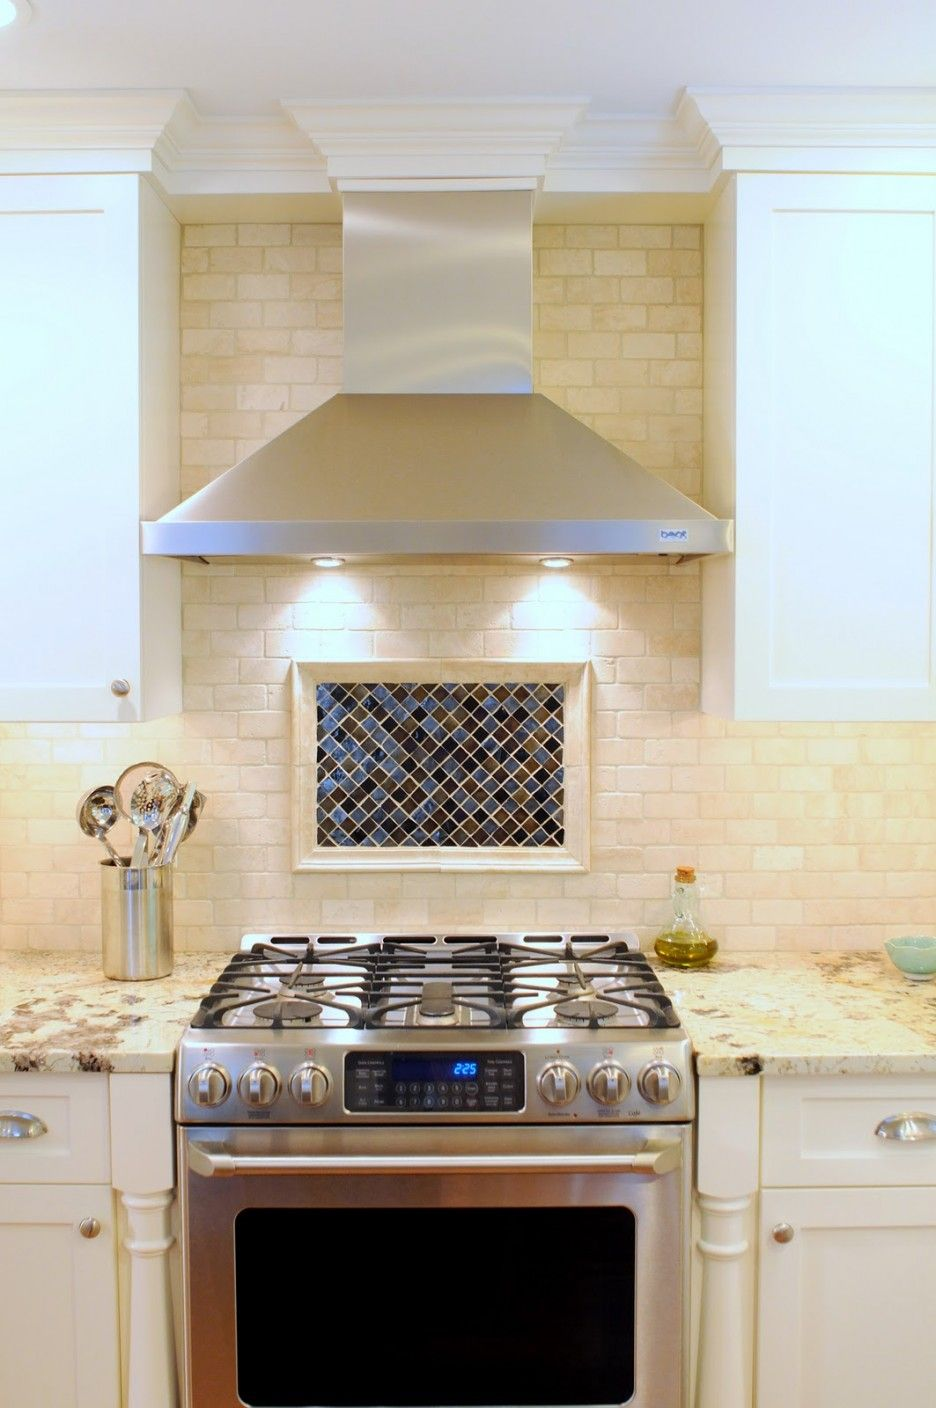 Best Kitchen Gallery: Amazing Hood Designs Kitchens Decoration With Stainless Steel of Kitchen Stove Hoods on rachelxblog.com